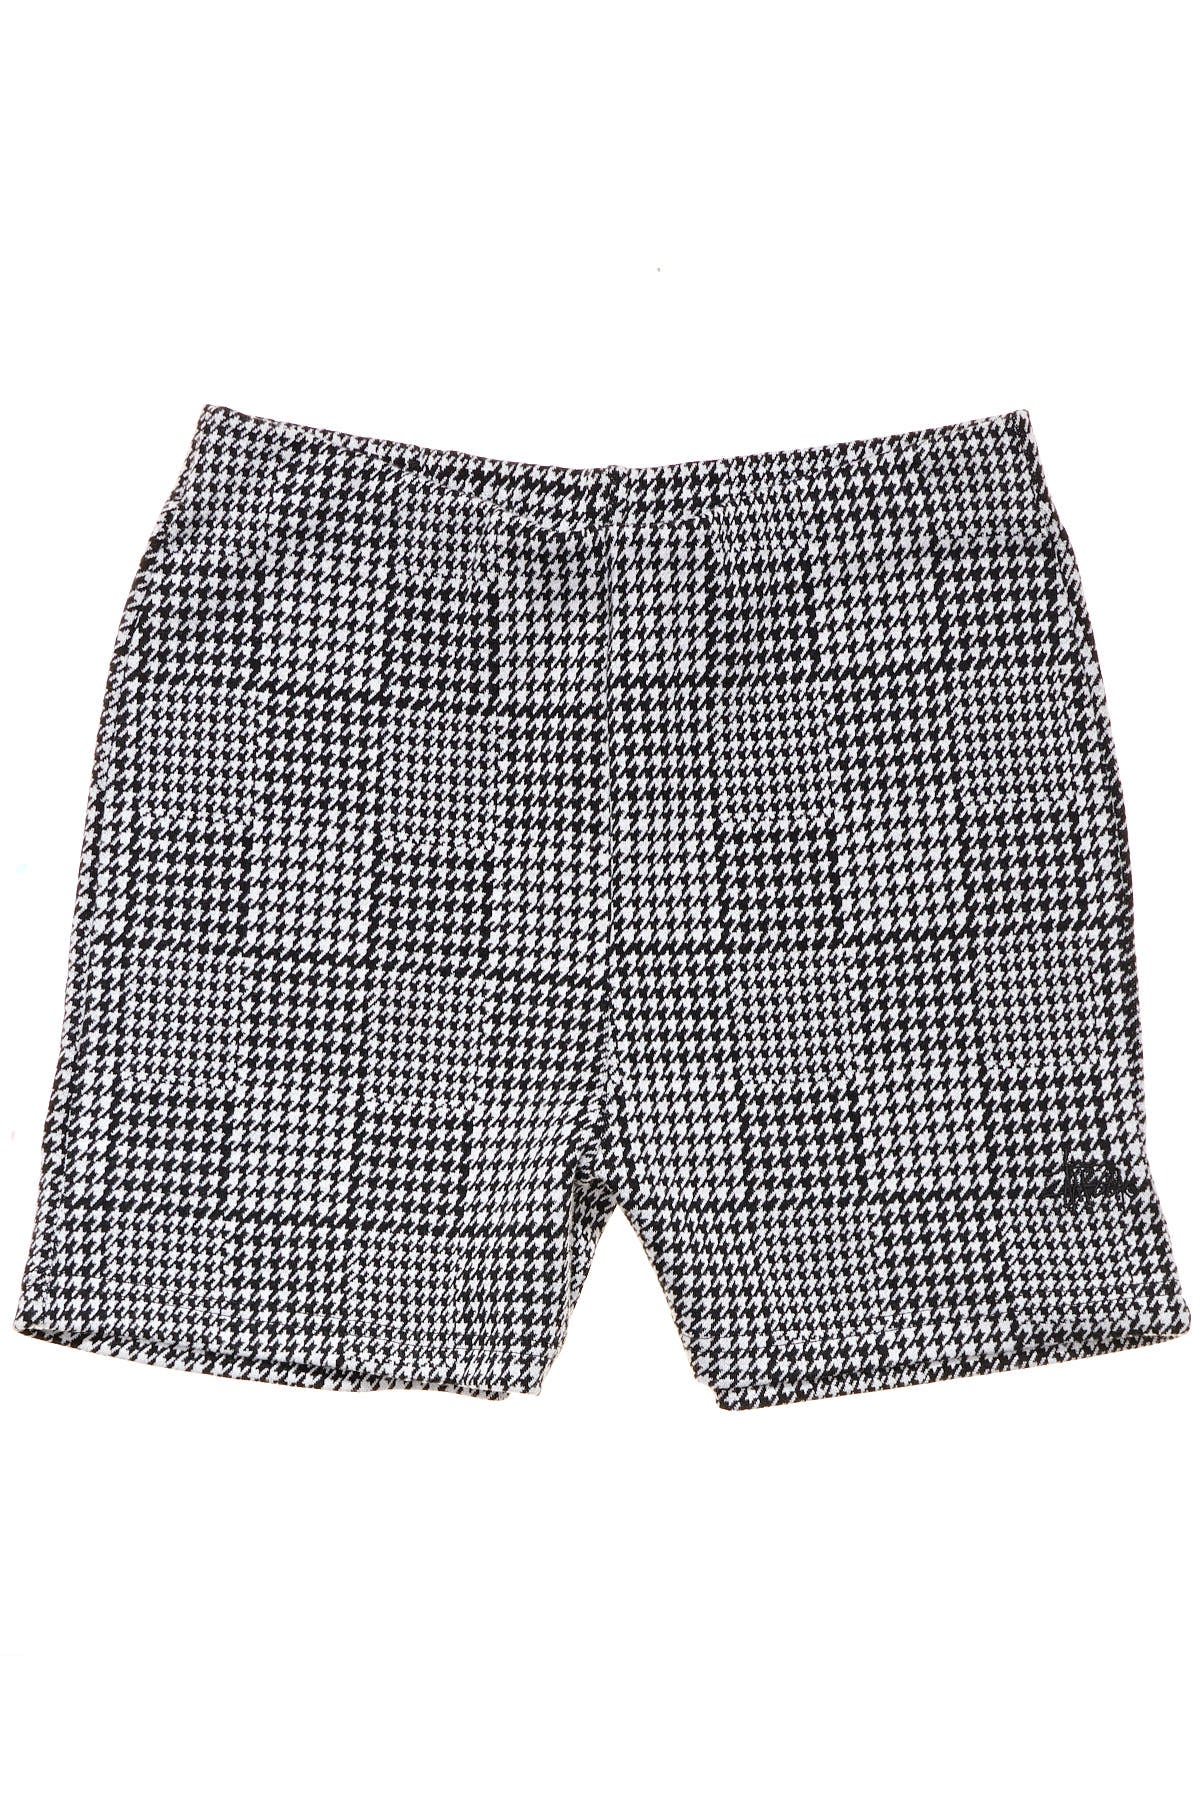 Montrose Knitted Check Short